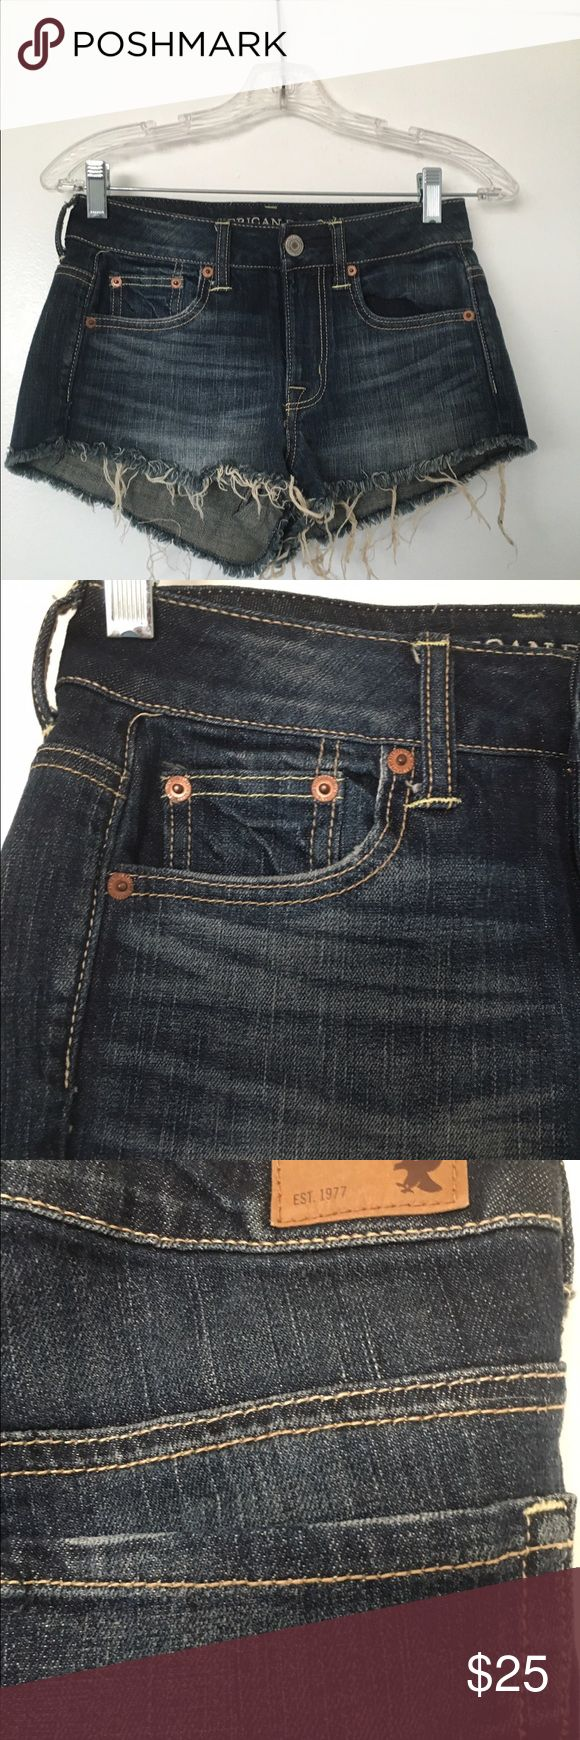 American Eagle Outfitters Jean Shorts American Eagle Outfitters Jean Shorts. Size 0. Great condition. American Eagle Outfitters Shorts Jean Shorts